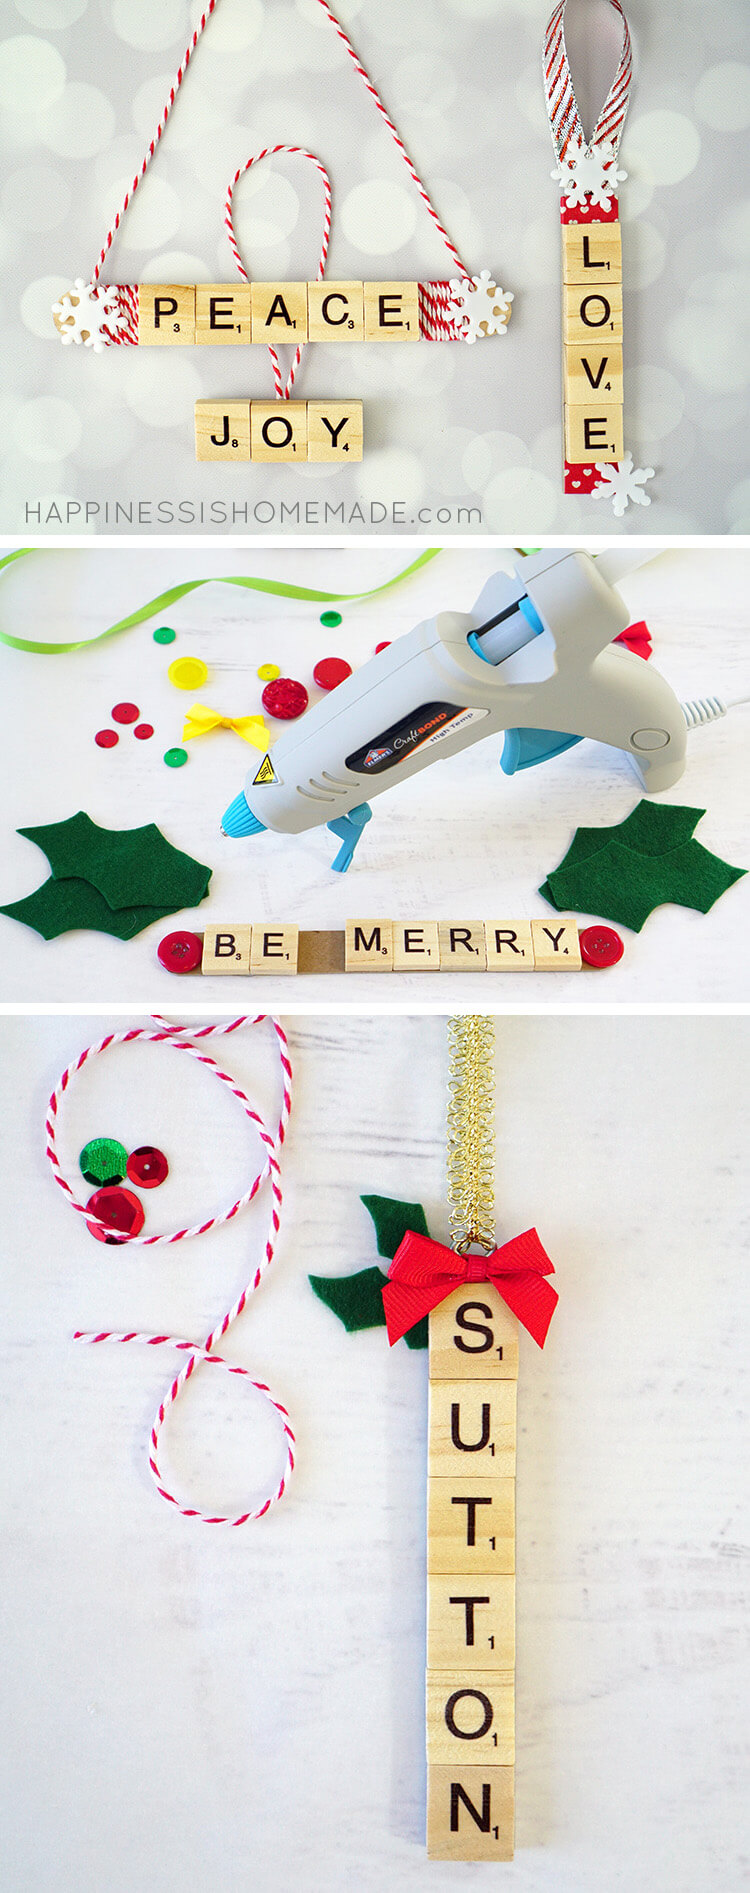 Personalized Scrabble Tile Christmas Ornaments - Happiness is Homemade